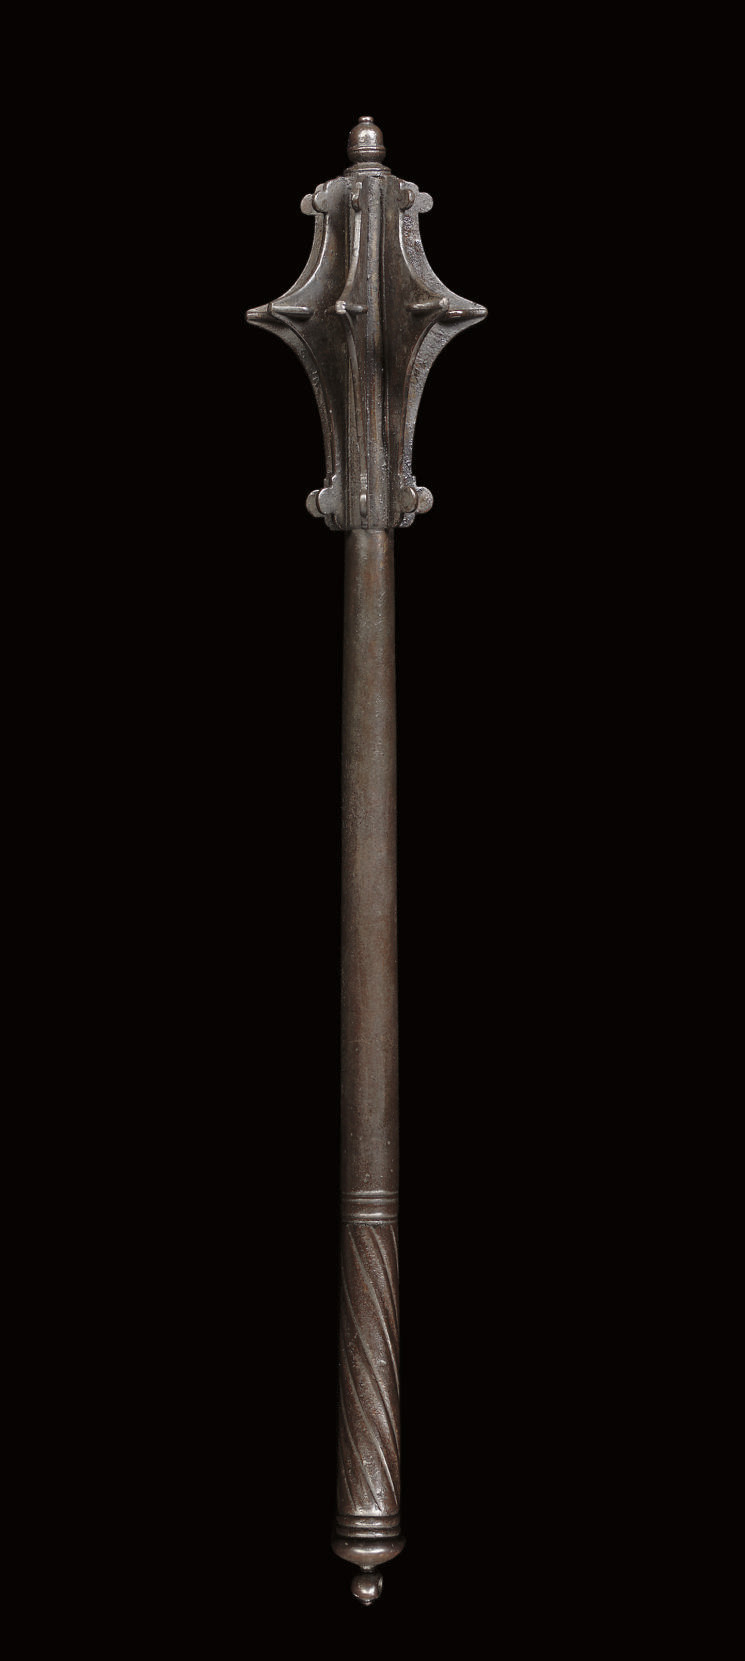 A GERMAN SEVEN-FLANGED MACE